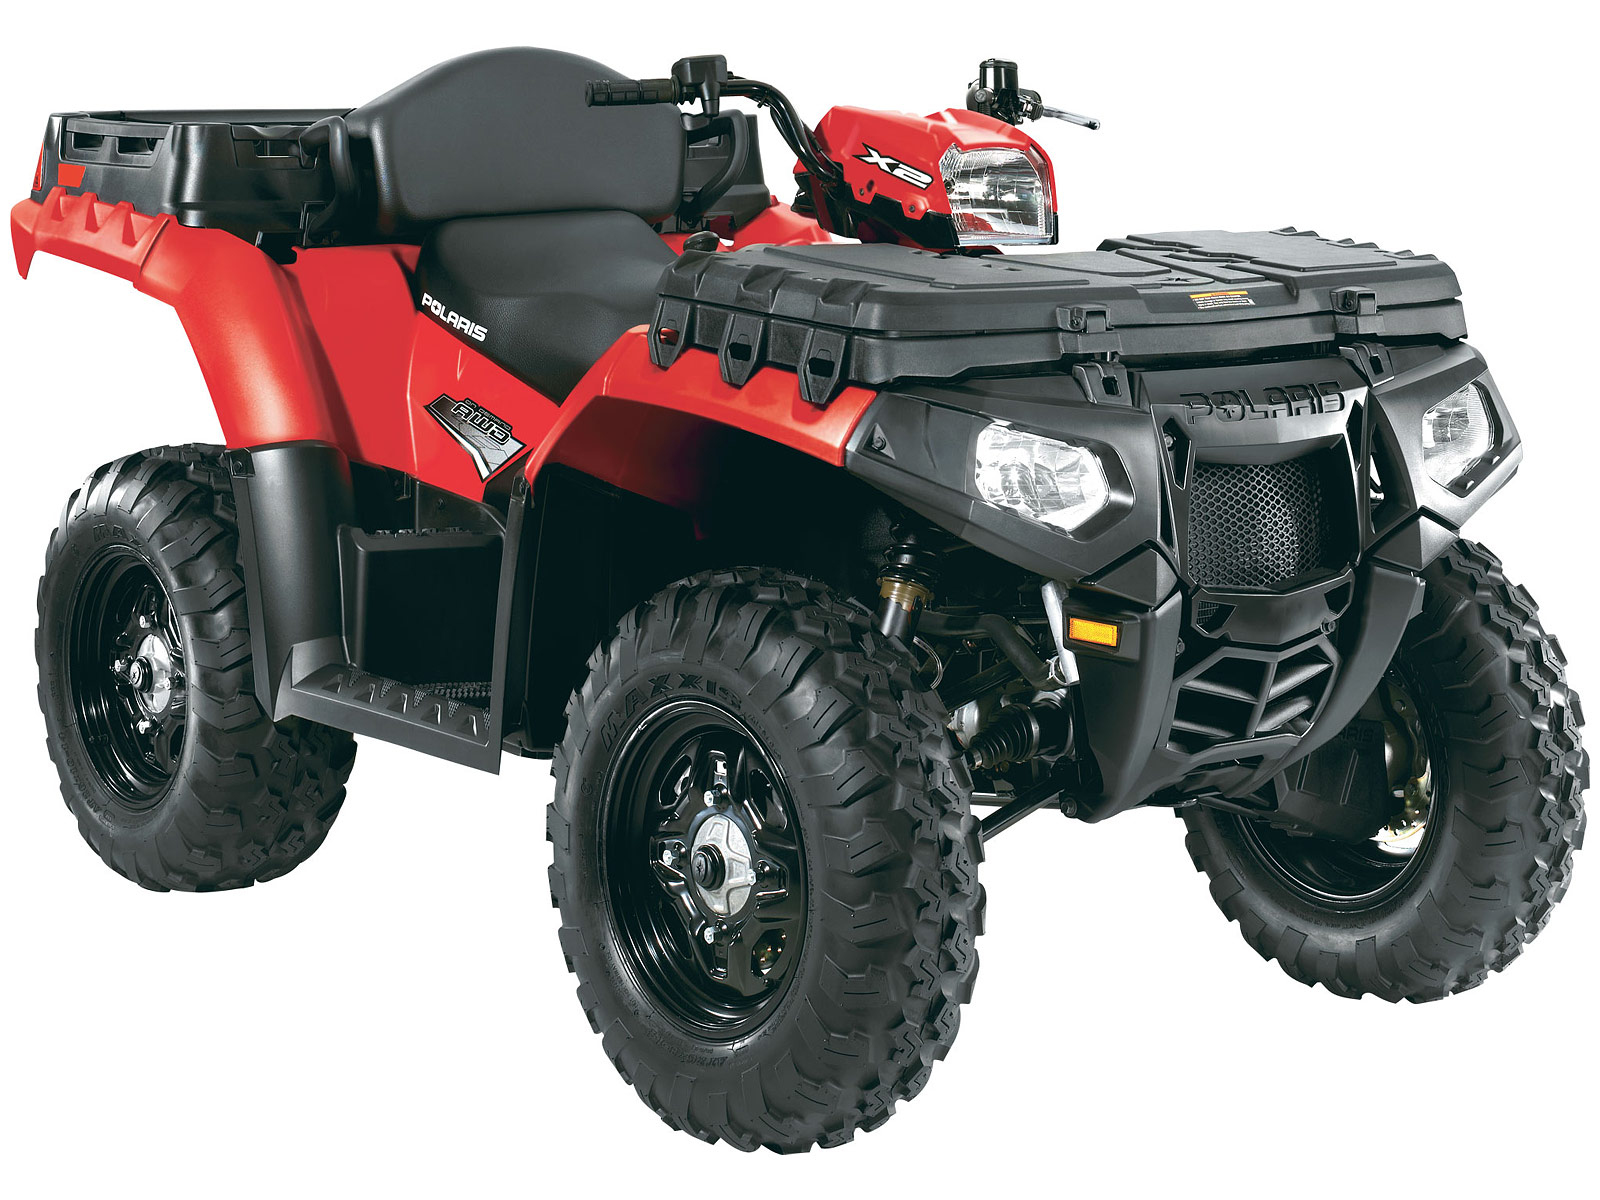 2012 polaris sportsman x2 550 atv pictures specifications. Black Bedroom Furniture Sets. Home Design Ideas